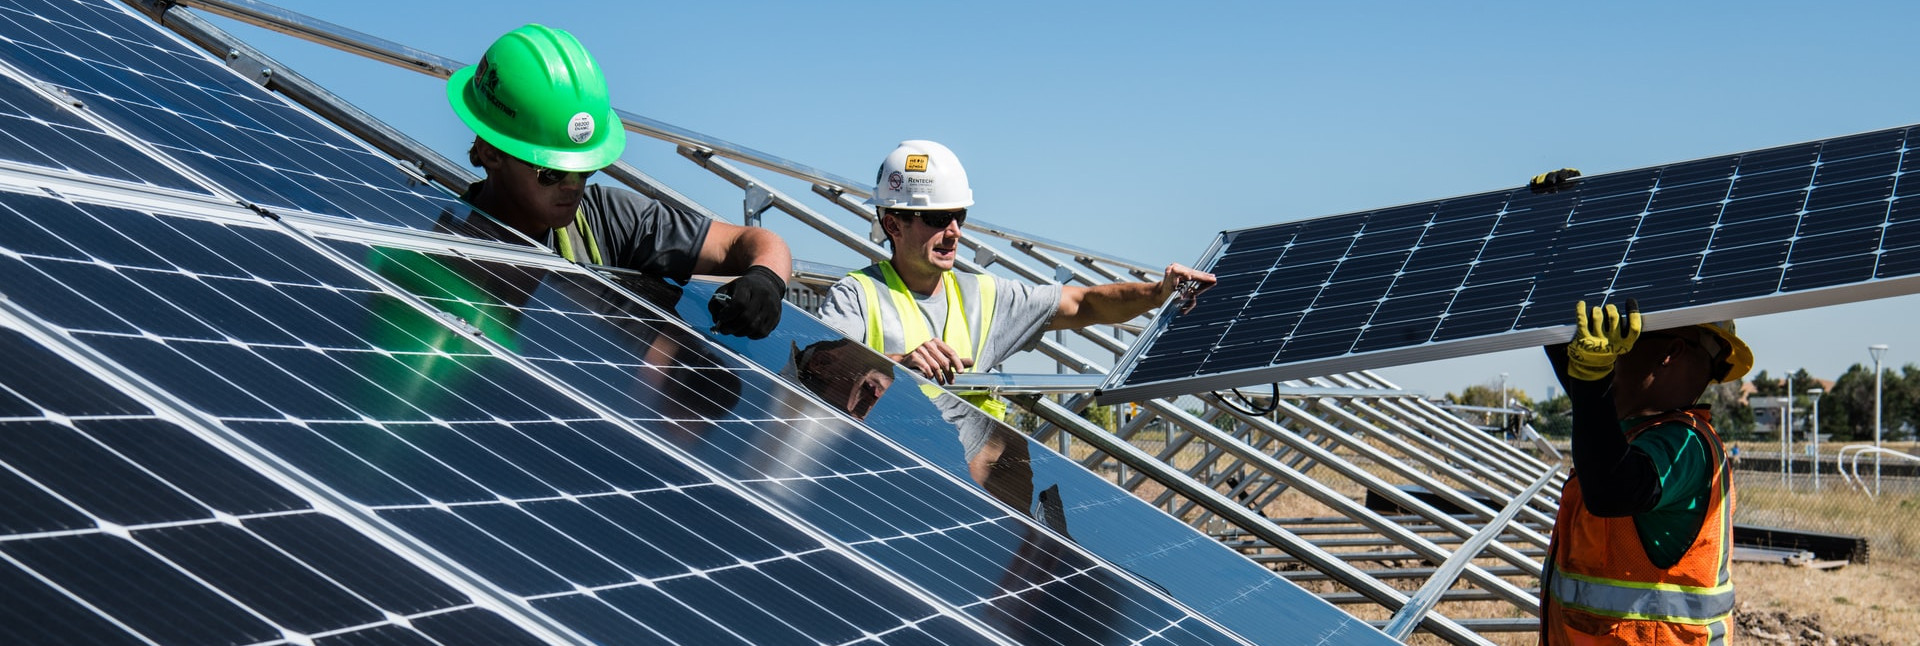 5 Renewable Energy Trends Forecasted for 2021